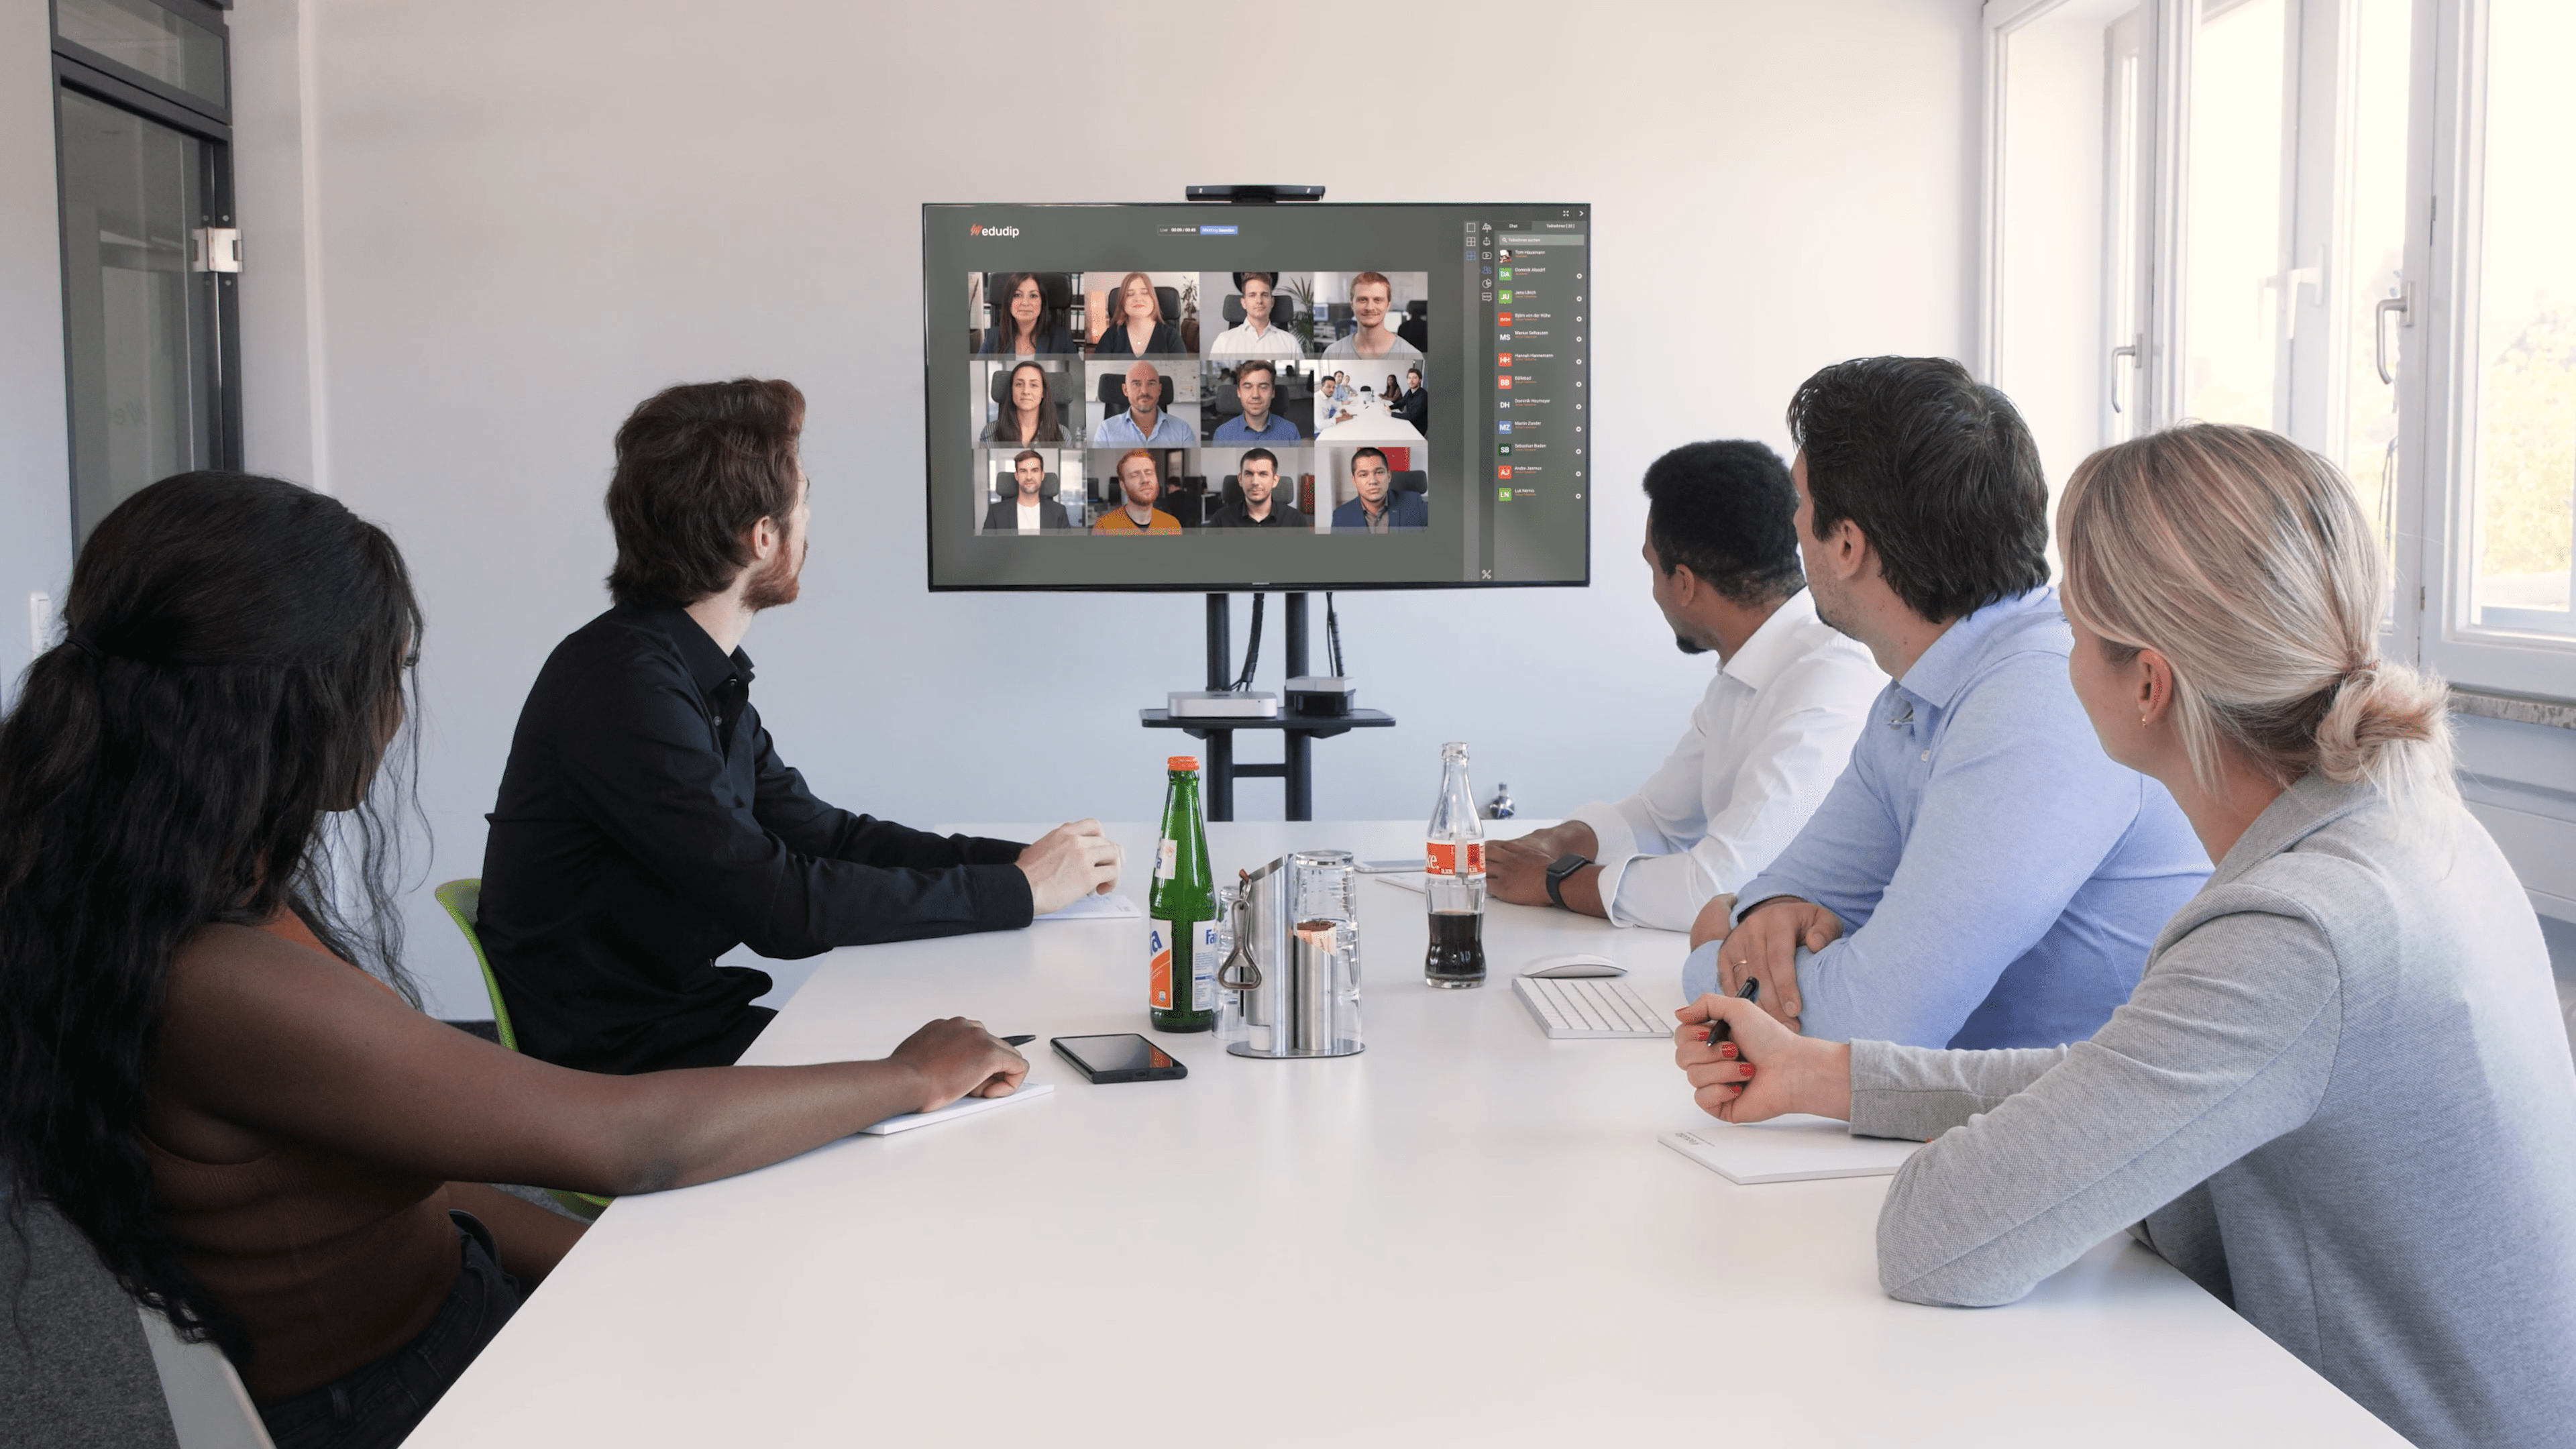 edudip next for video conferencing and online meetings